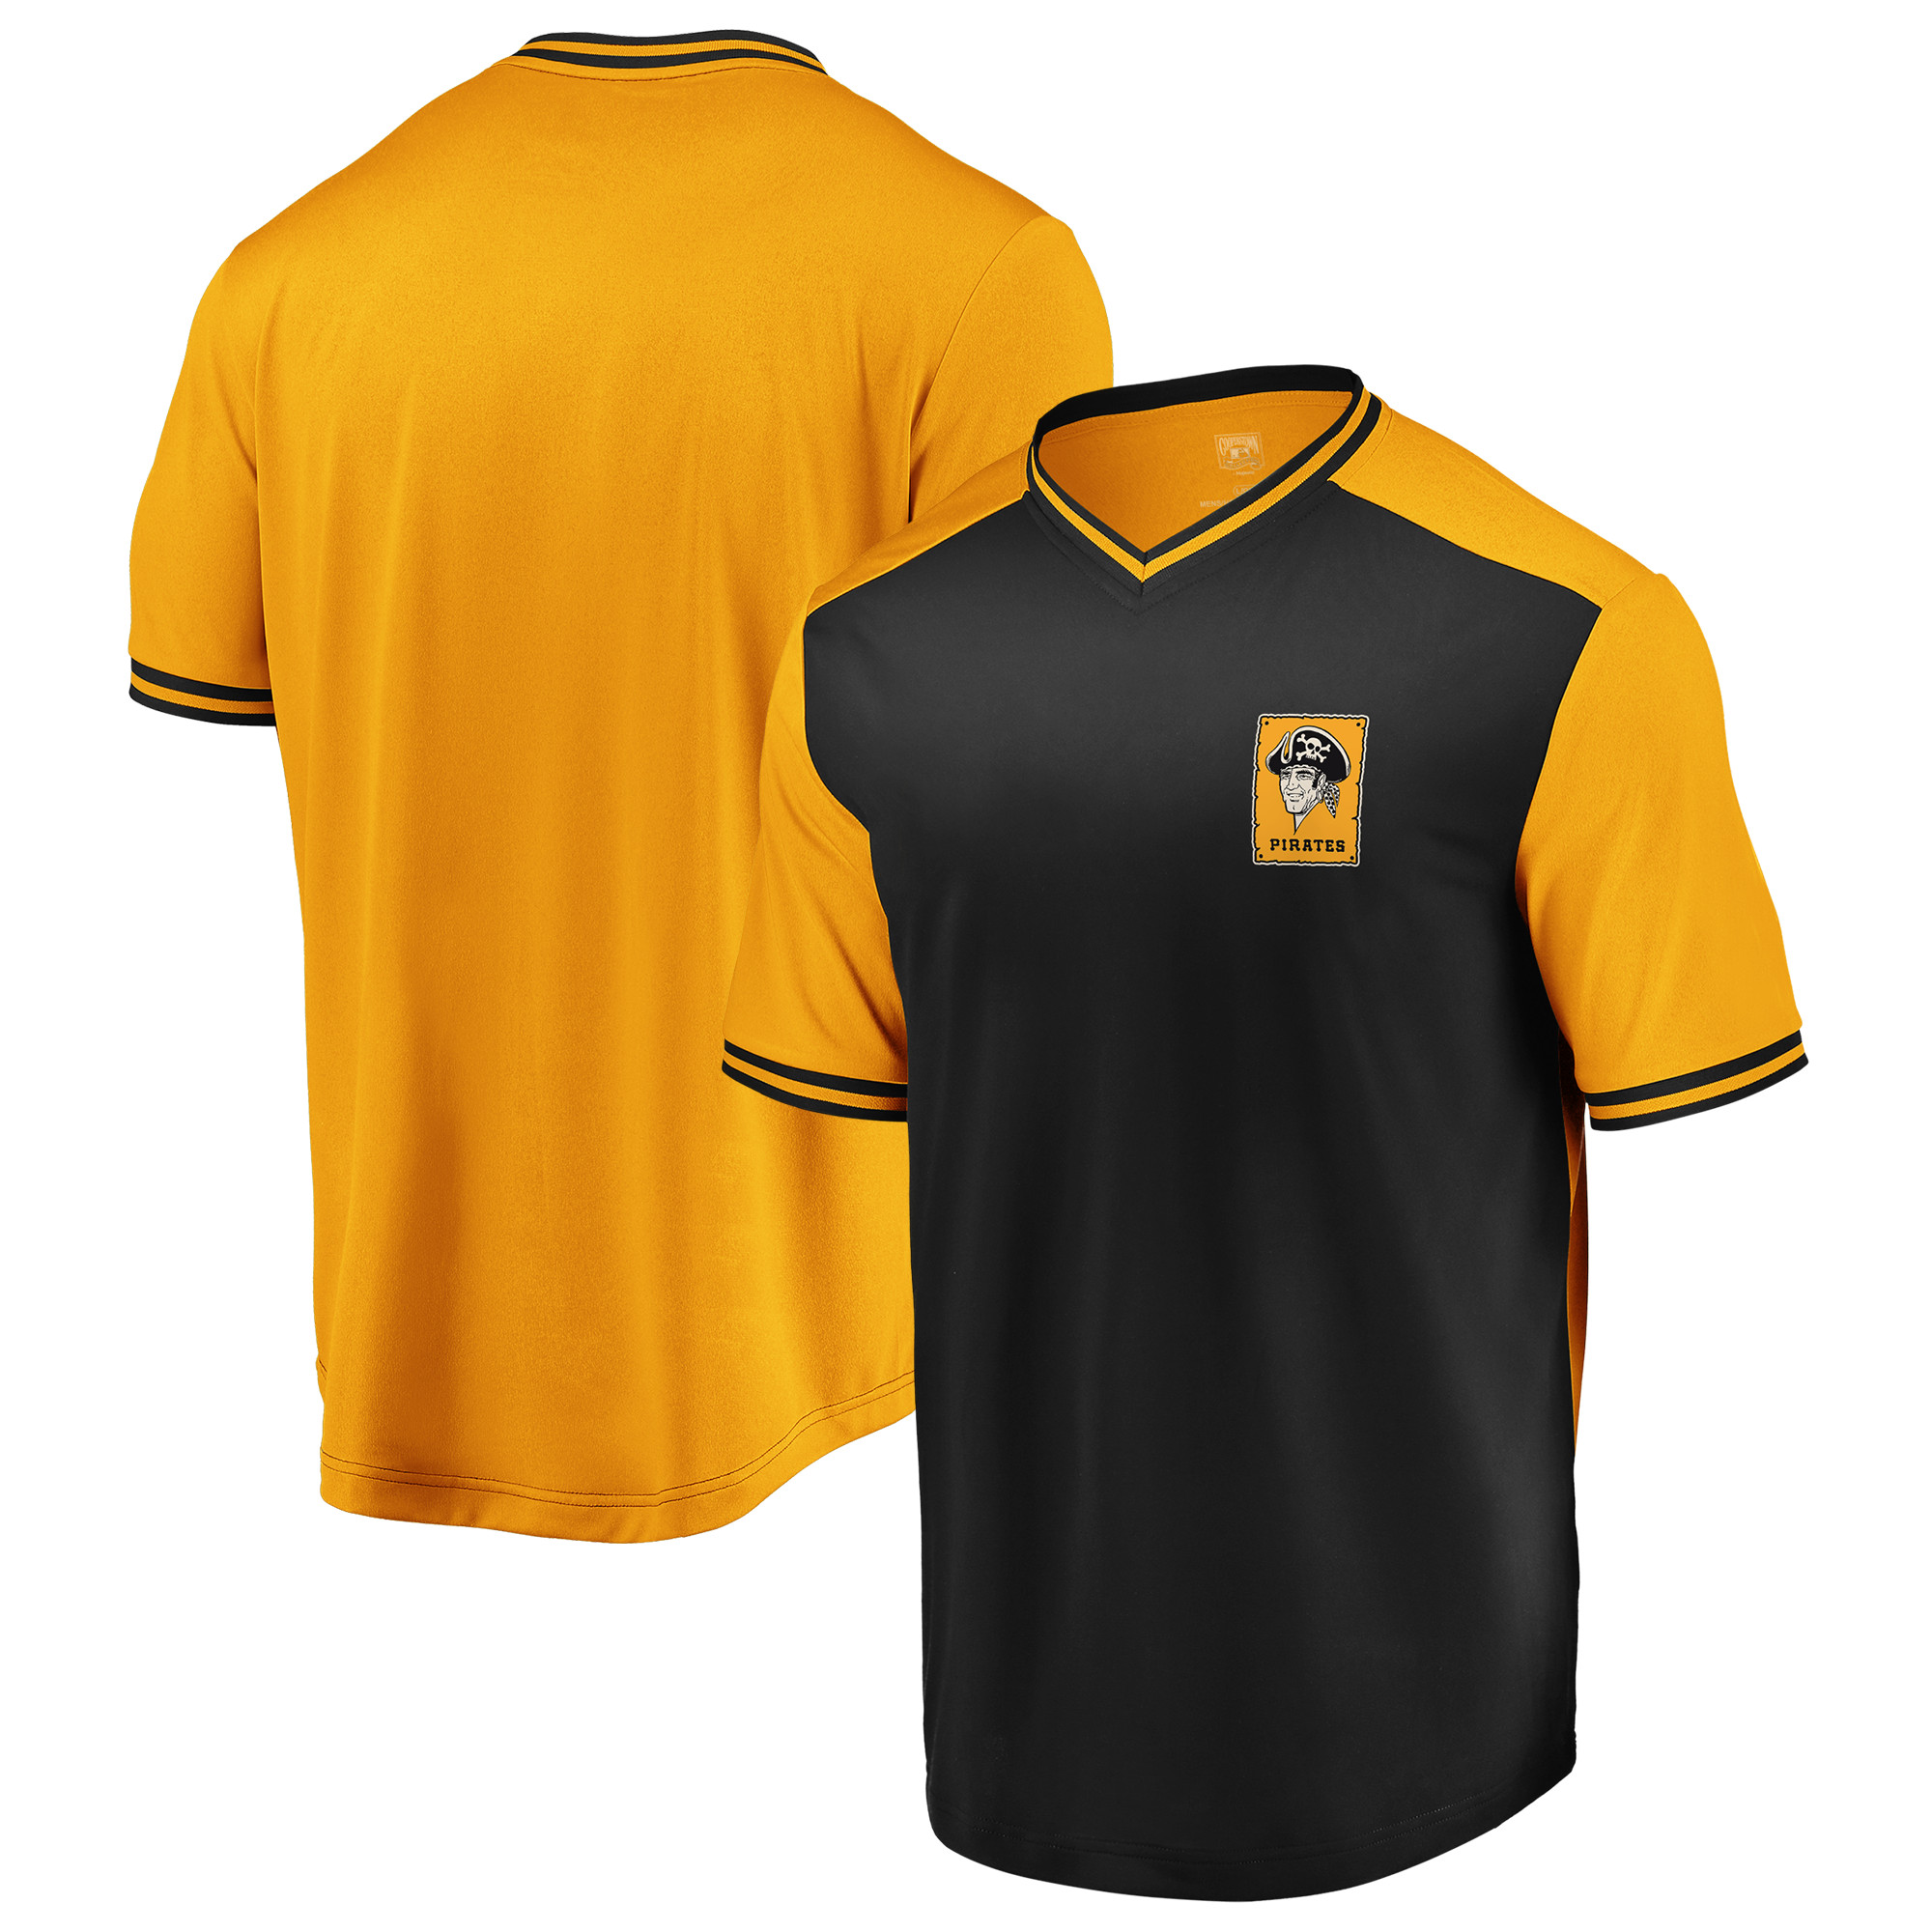 Pittsburgh Pirates Majestic Good Graces Cooperstown Collection V-Neck T-Shirt - Black/Gold